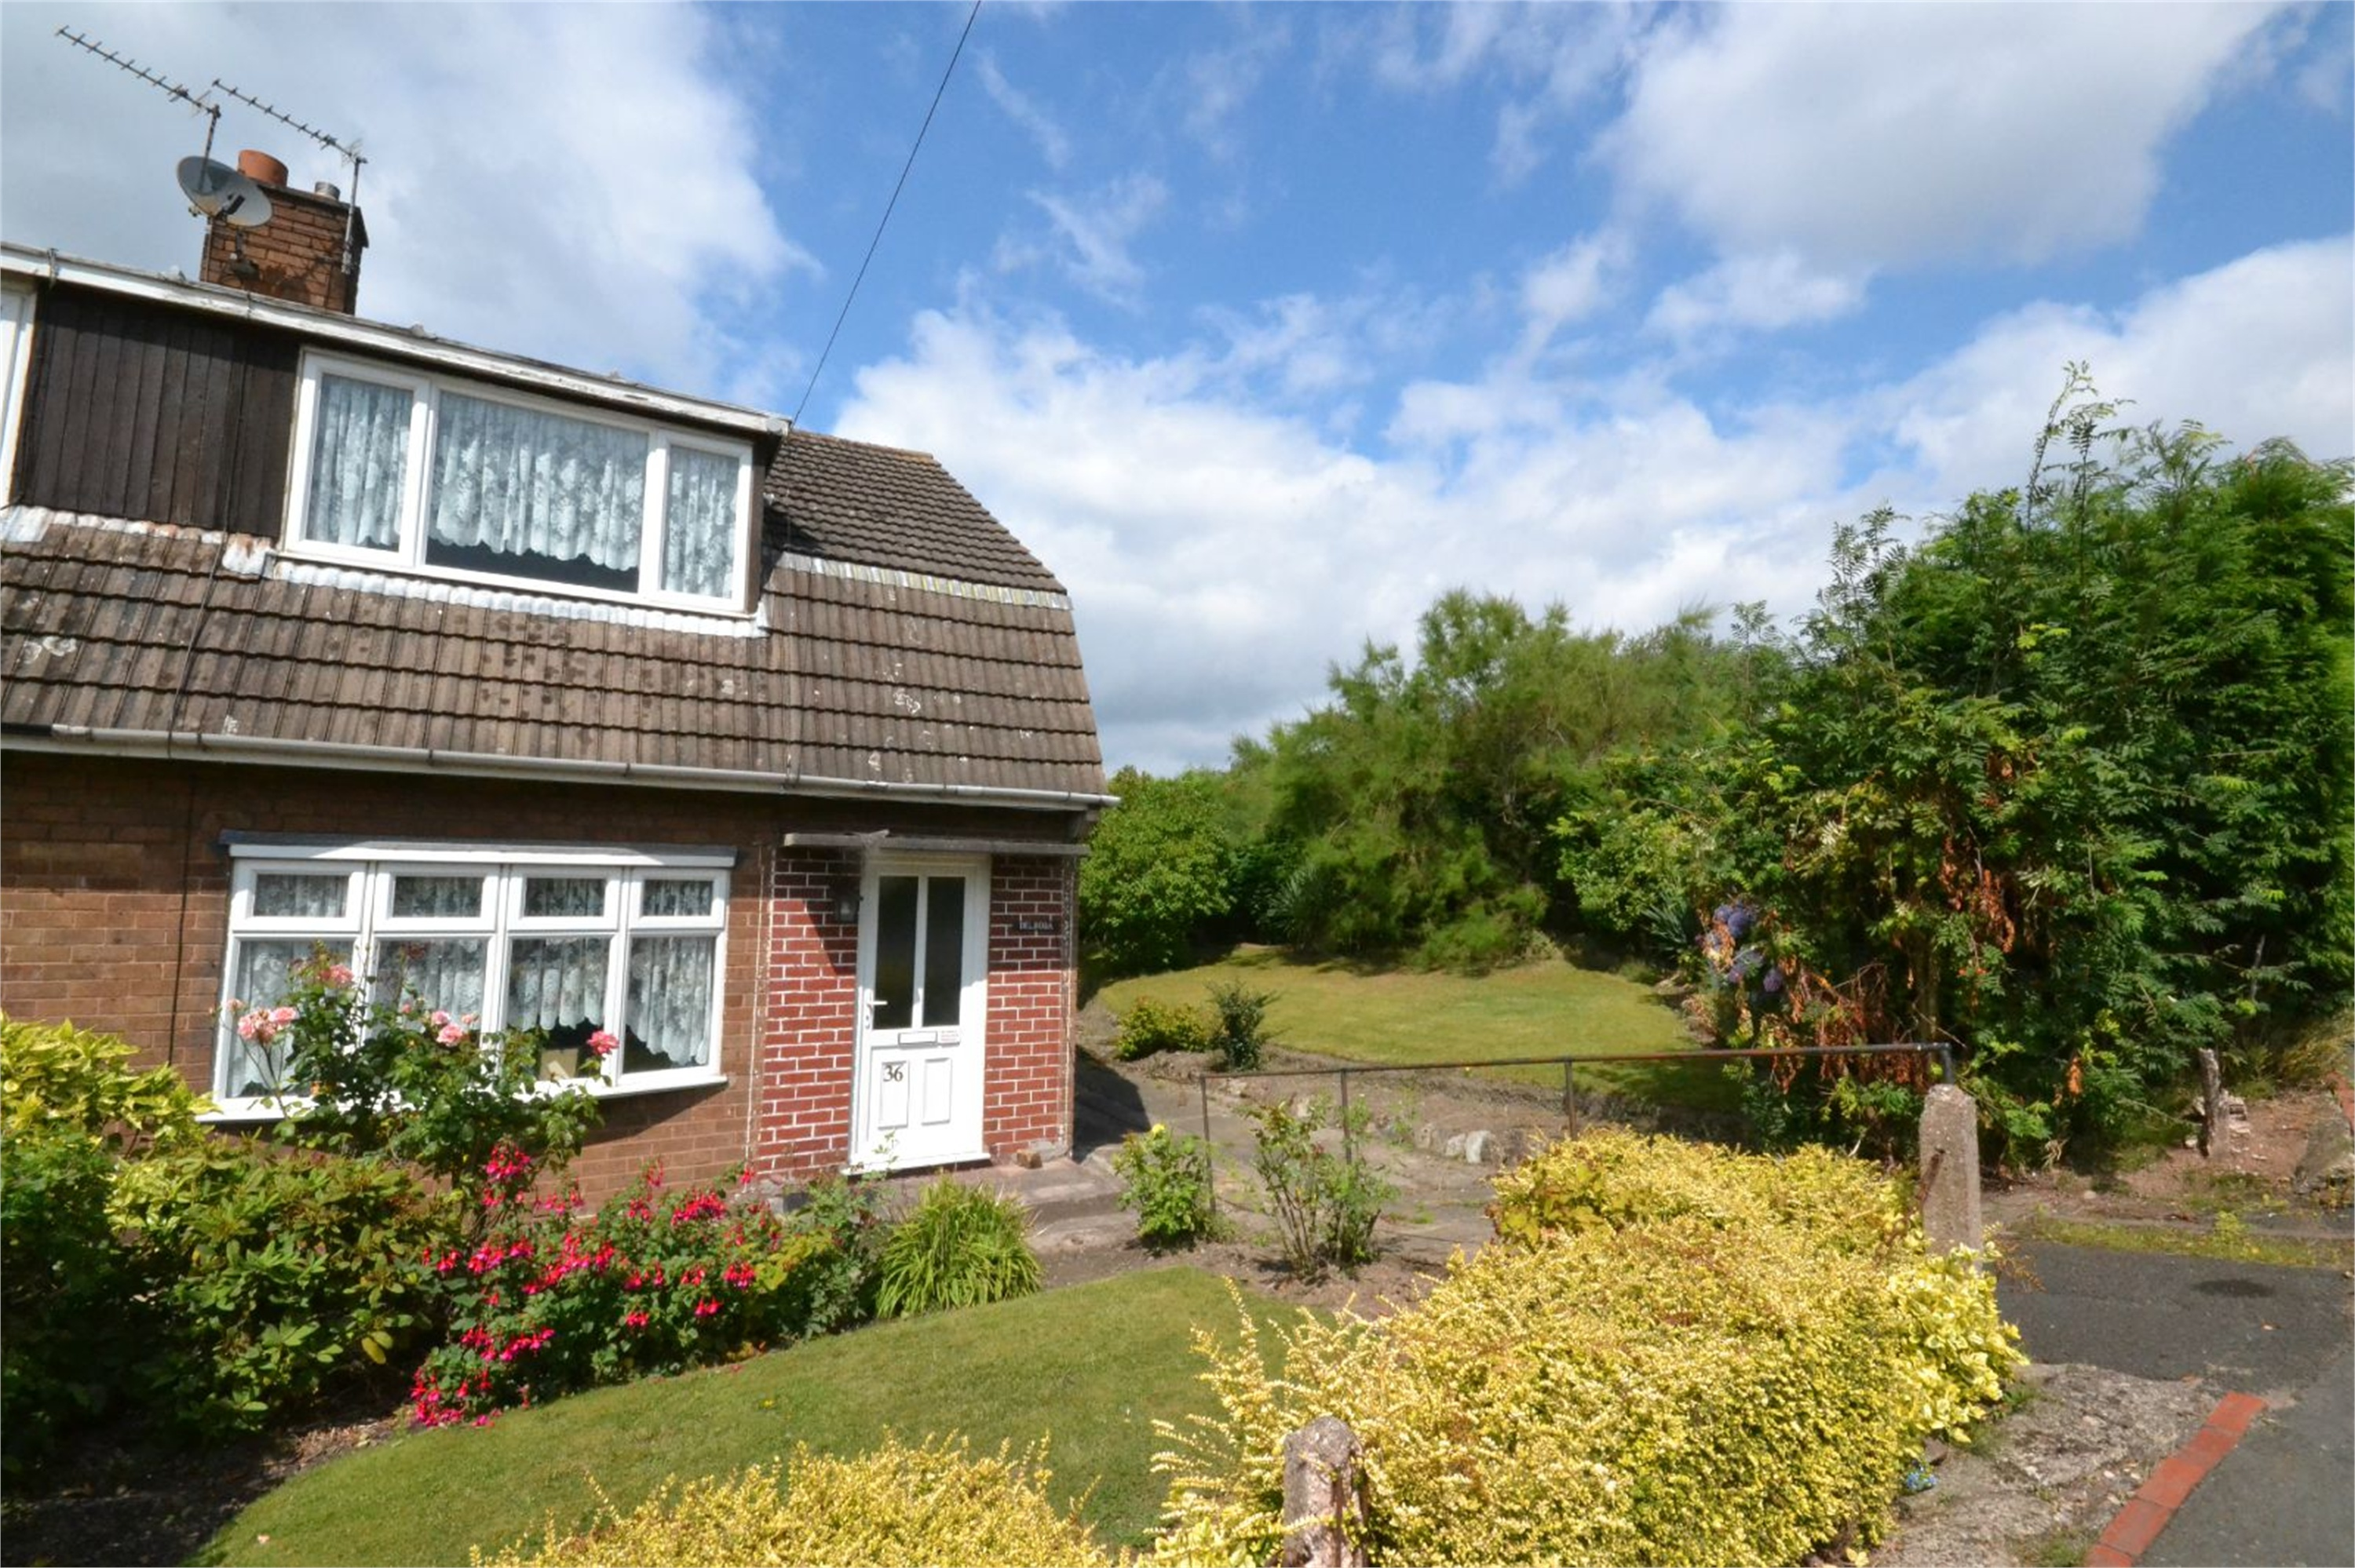 3 Bedrooms Semi Detached House for sale in 36 Hollyhurst Road, Wrockwardine Wood, Telford, Shropshire, TF2